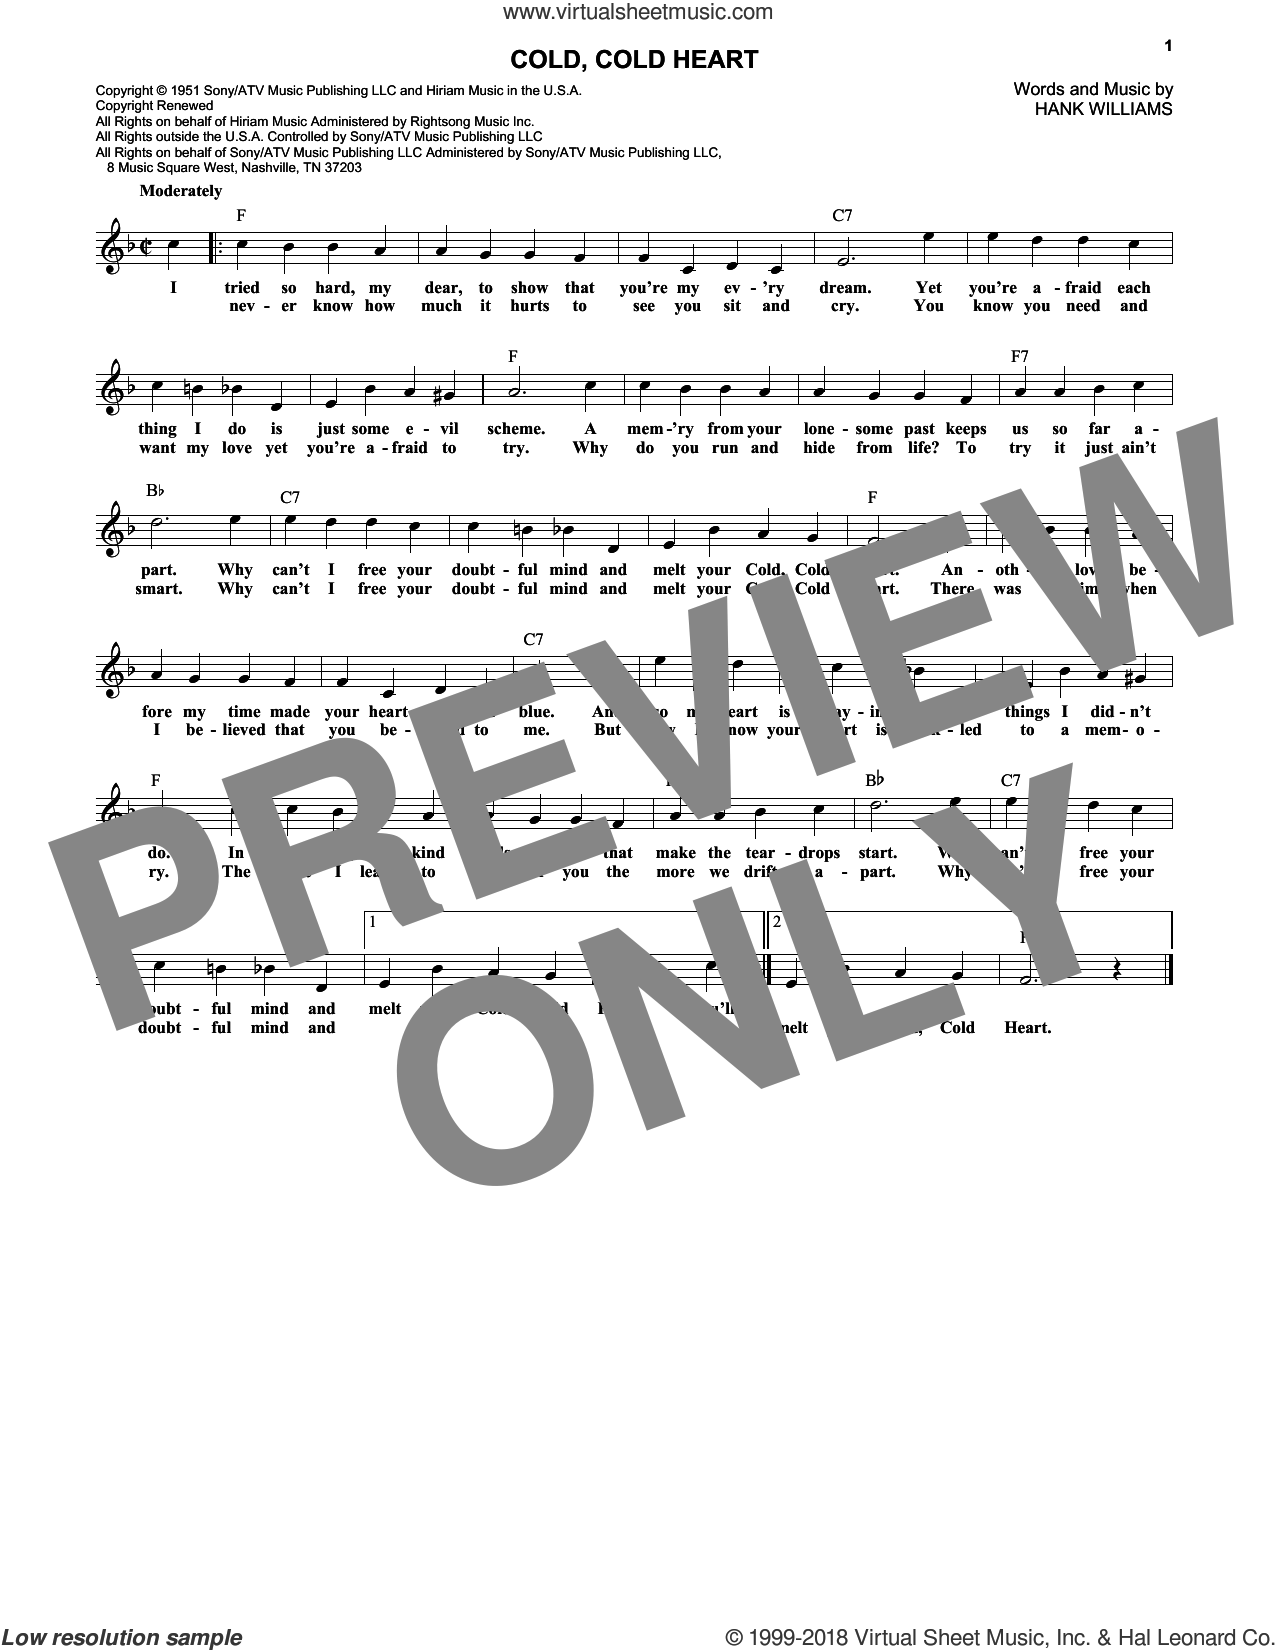 Cold, Cold Heart sheet music for voice and other instruments (fake book) by Hank Williams, intermediate voice. Score Image Preview.